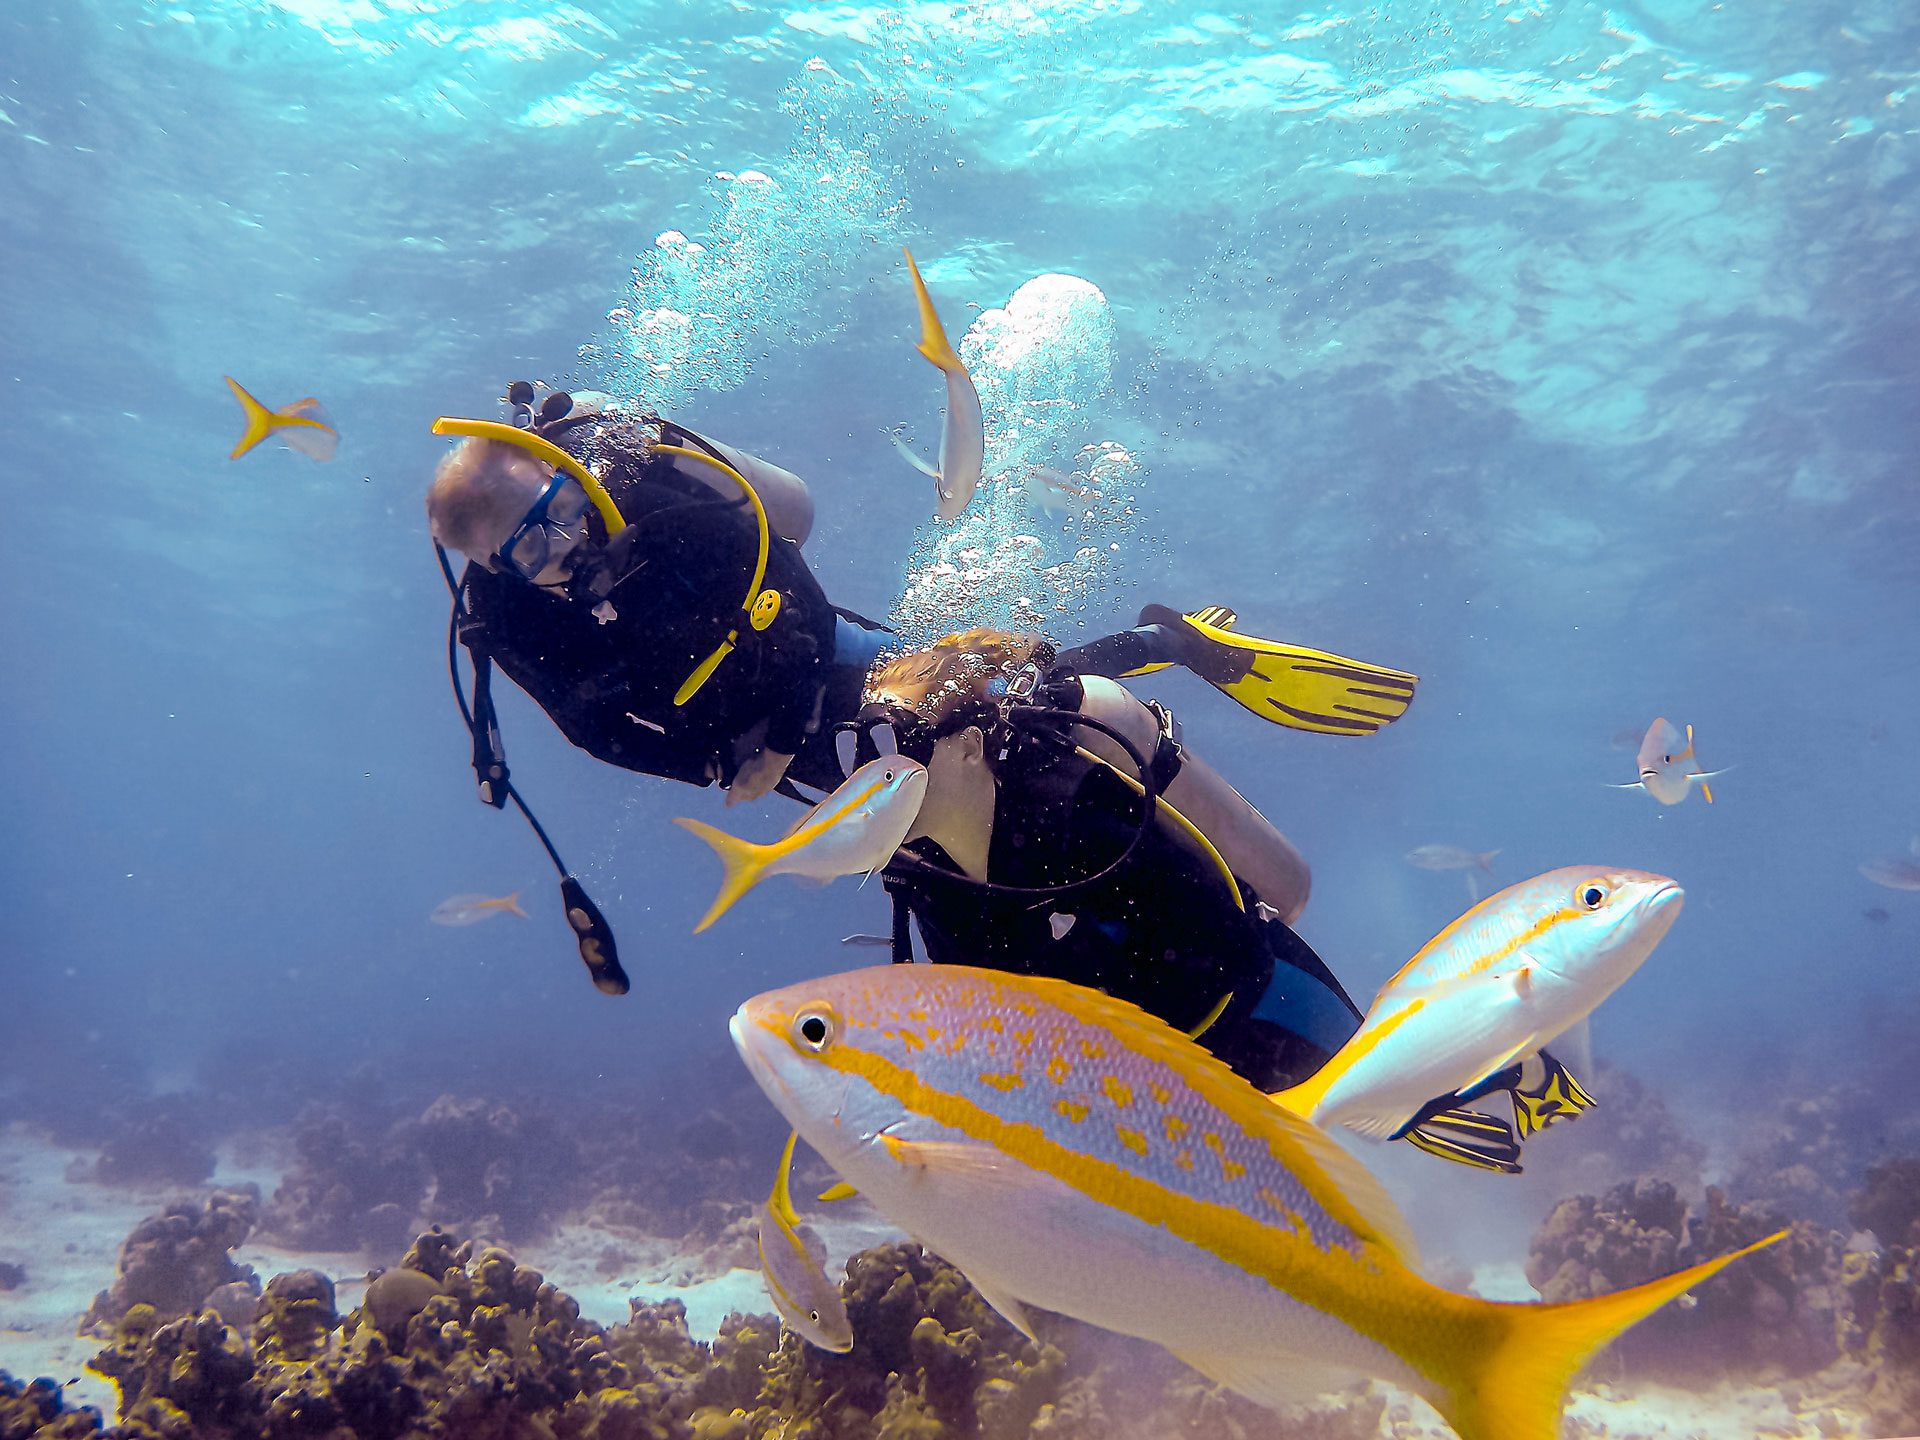 Scuba divers and fish in Bay of Pigs, Cuba